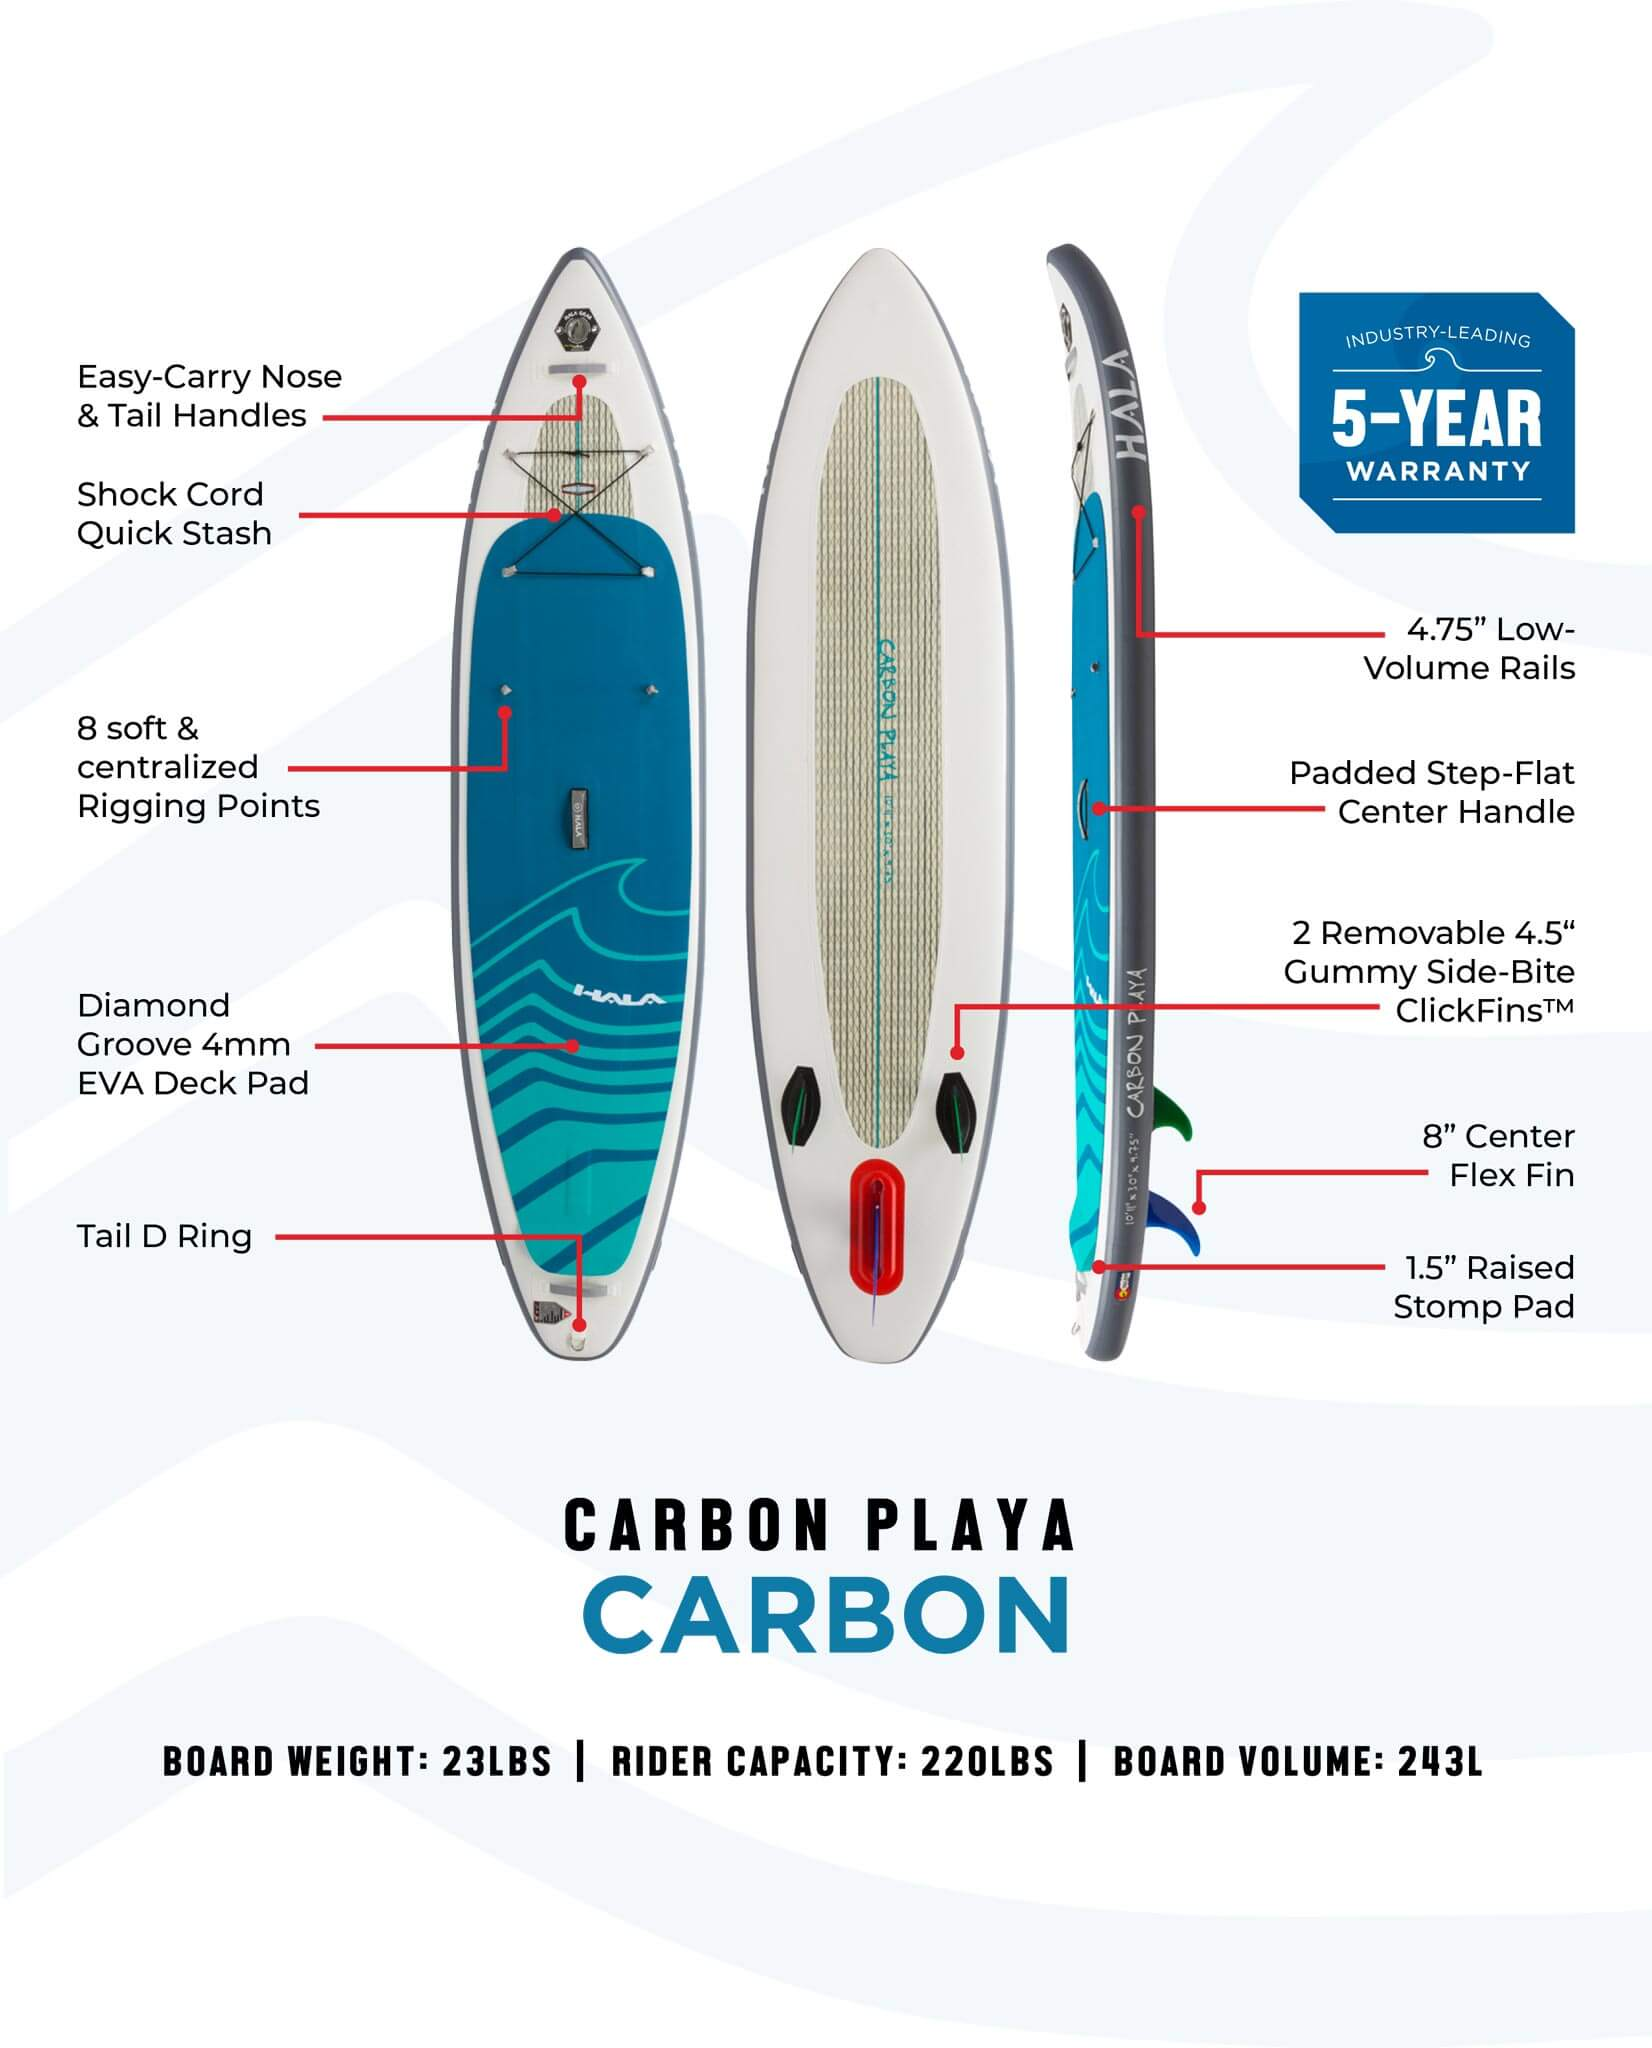 easy-carry nose & tail handles. SHock cord quick stash. 8 soft and centralized rigging points. diamond groove 4mm eva deck pad. tail d ring. 4.75